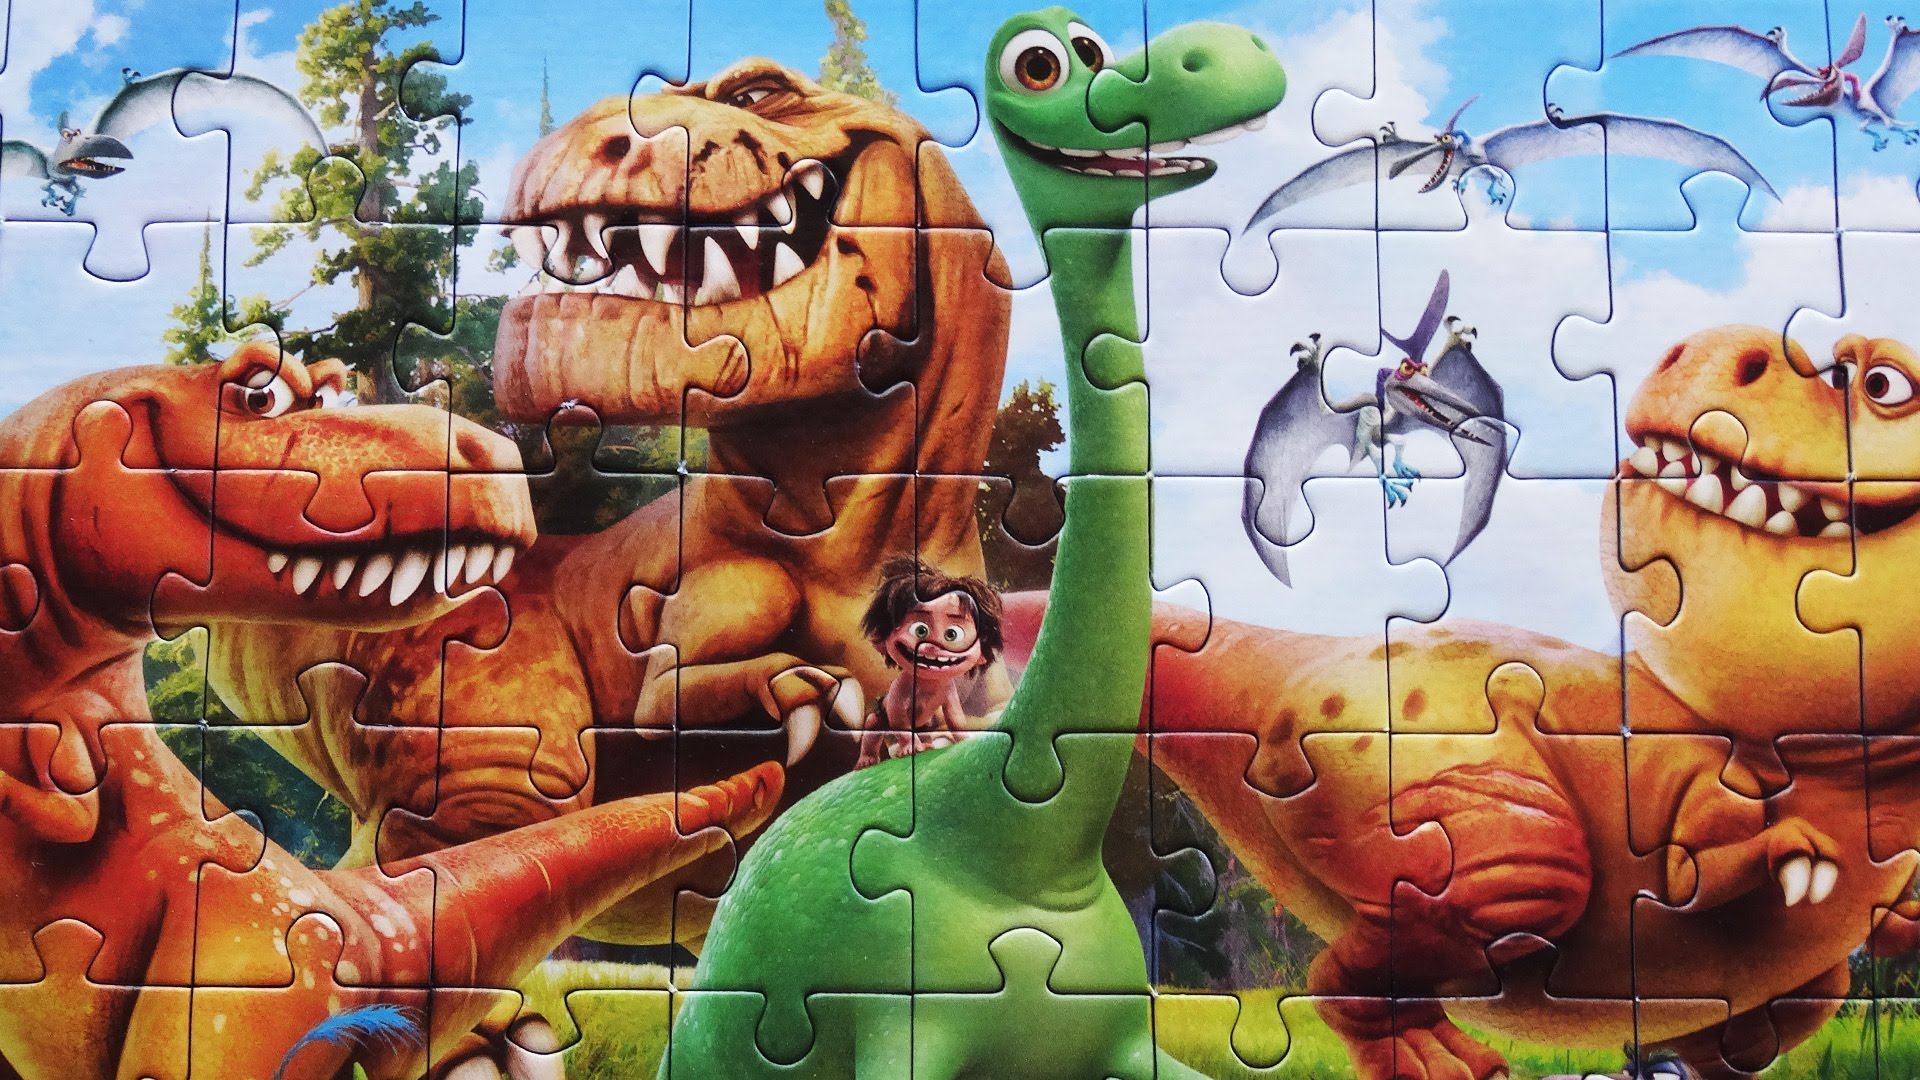 Amazing The Dinosaur Jigsaw Puzzle Games For Kids